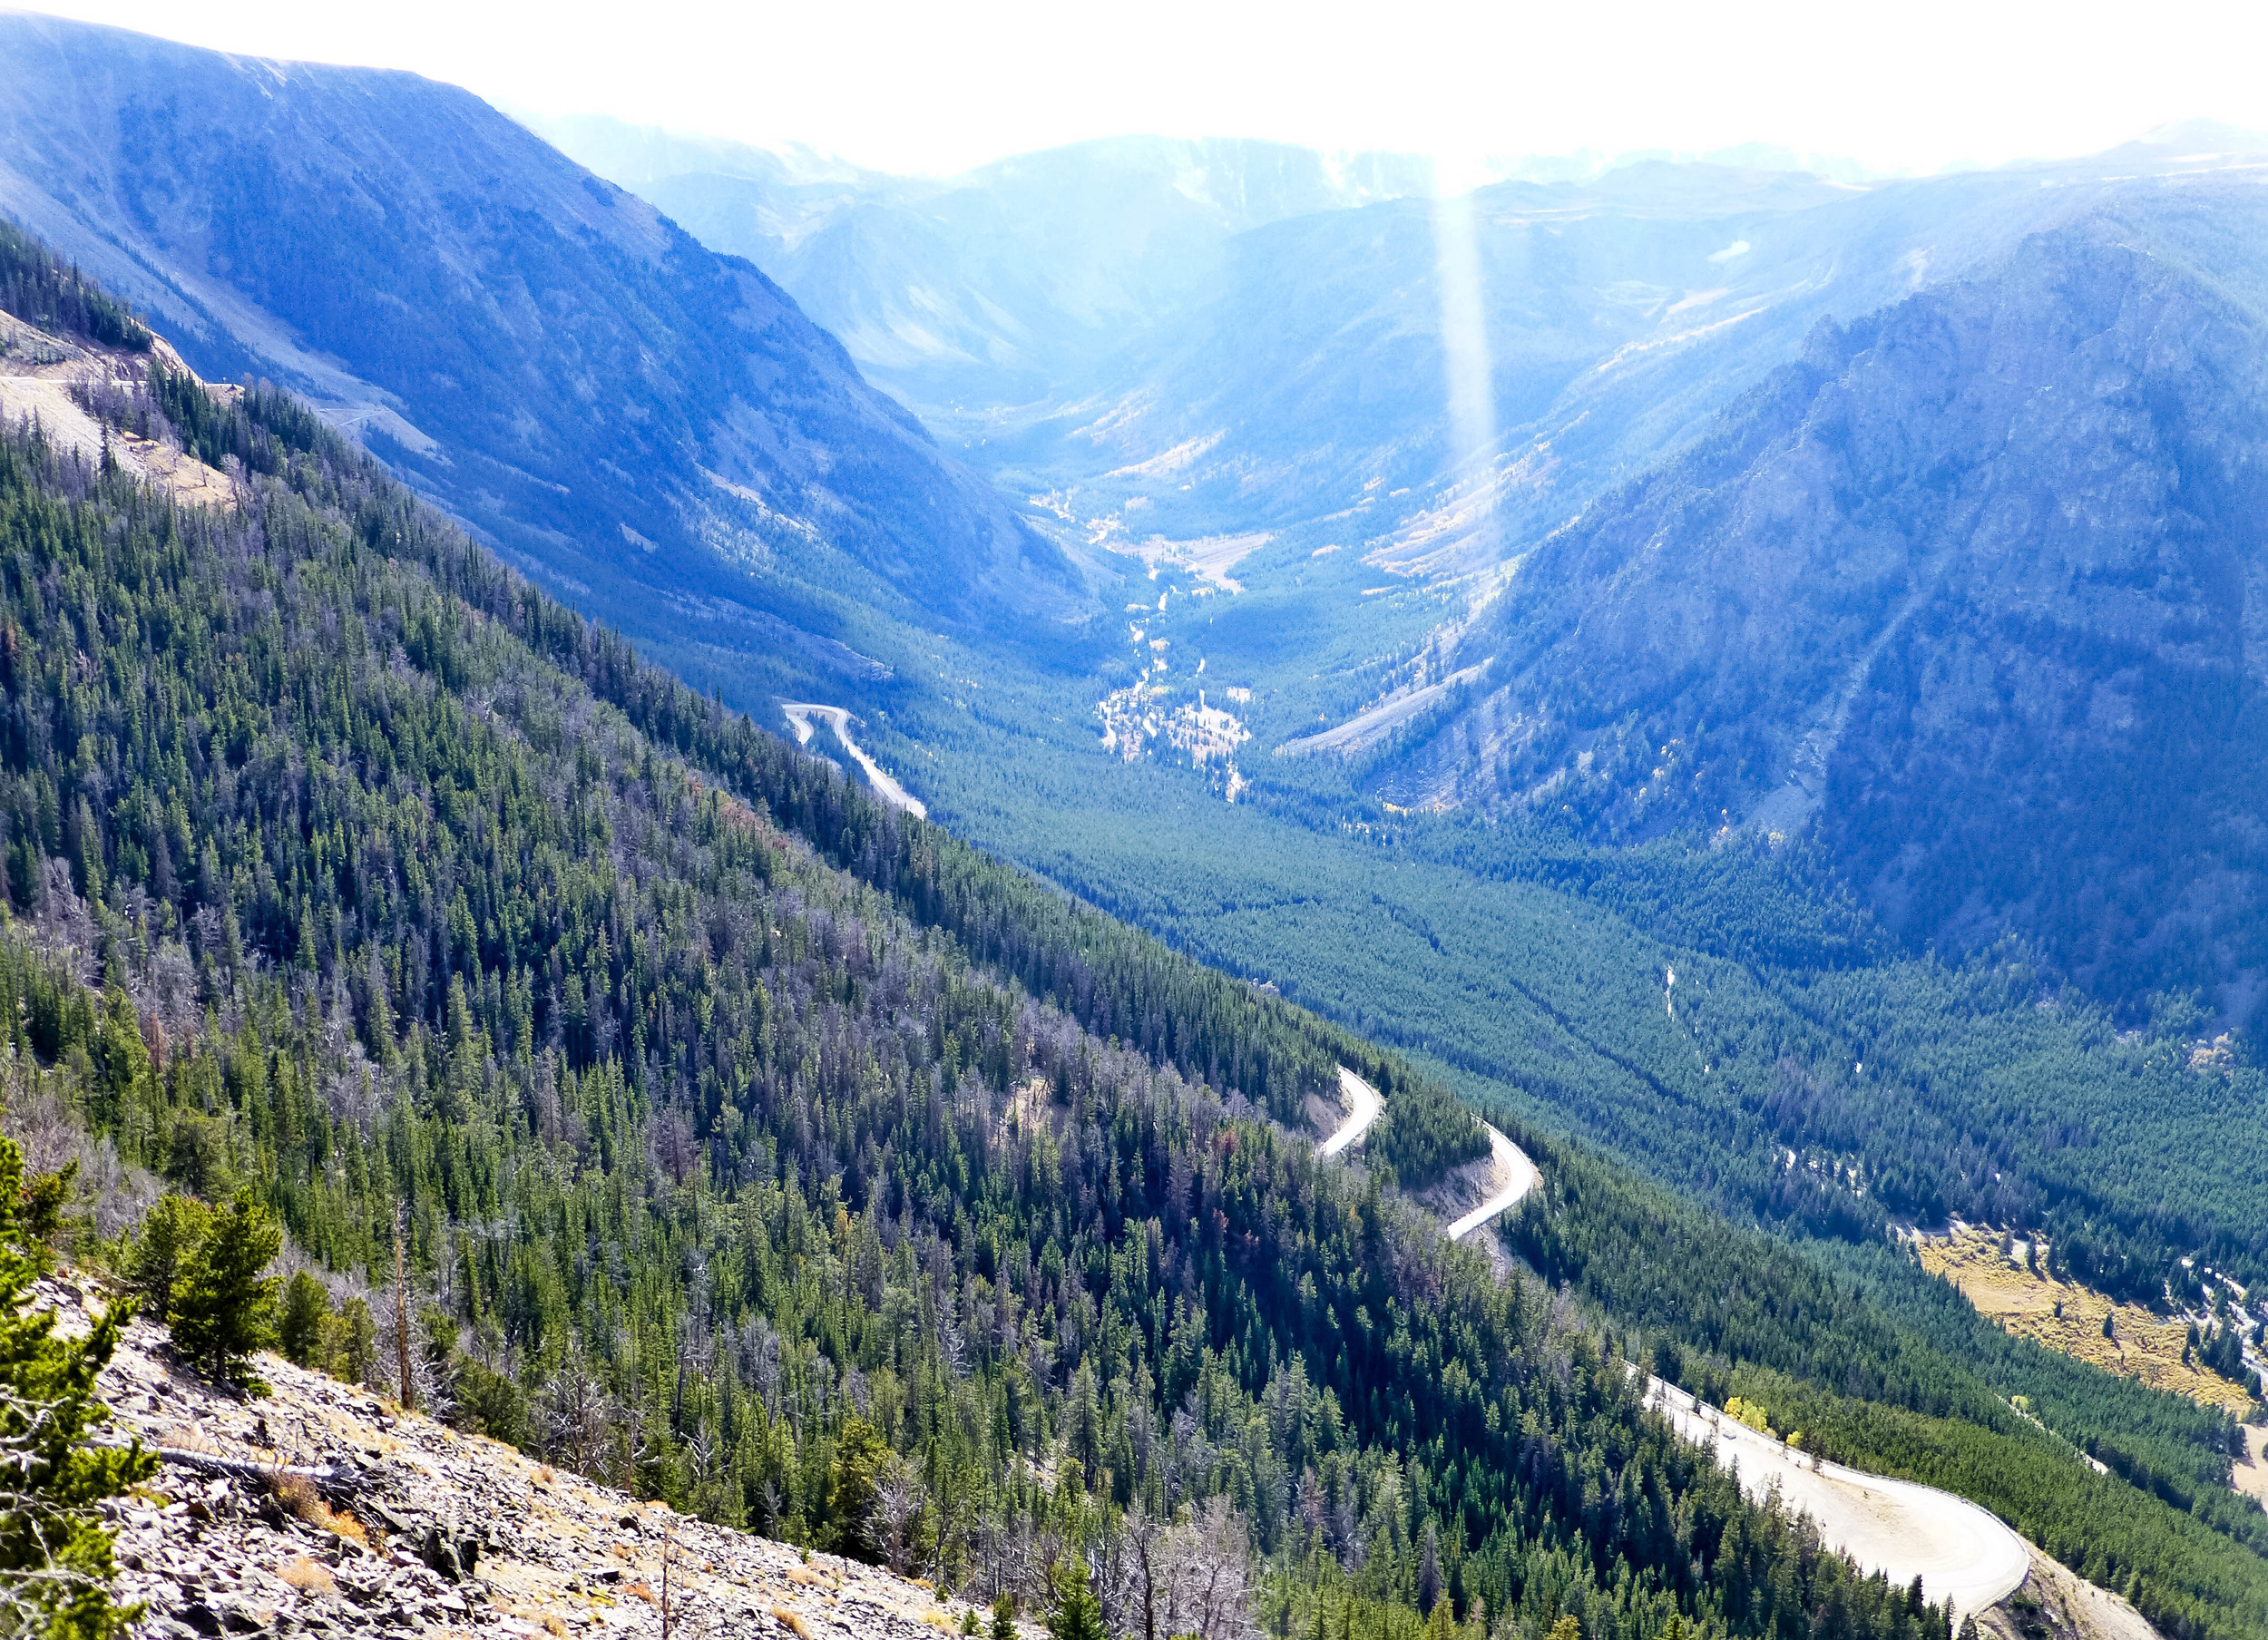 On the Beartooth Highway - harp hairpin curves